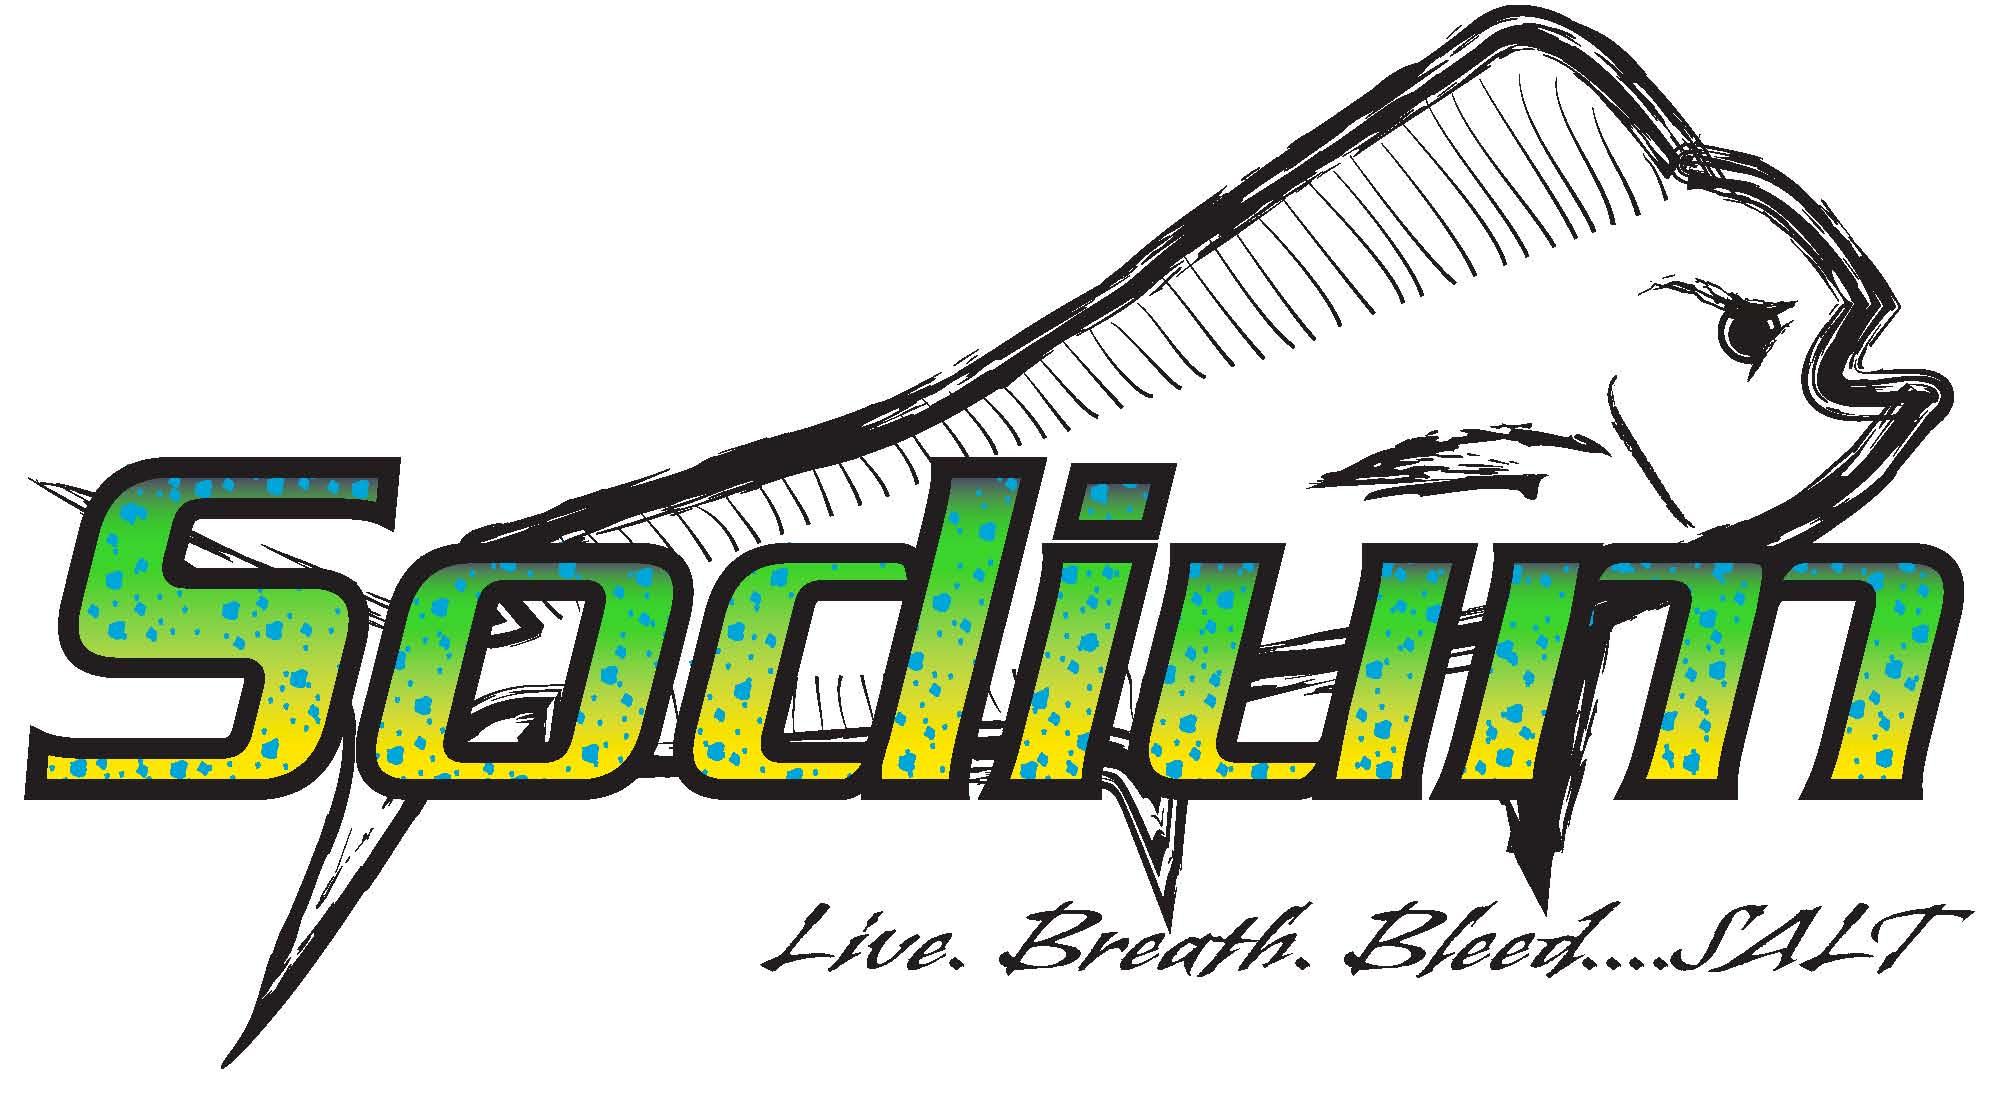 Vector Mahi Mahi Fish By Tourq31 On Deviantart. Blurry Vision Signs. Gold Shop Banners. February 1st Signs. Ray Signs. Truck Body Decals. Buy Labels Online. American Eagle Banners. Fantasy Stickers